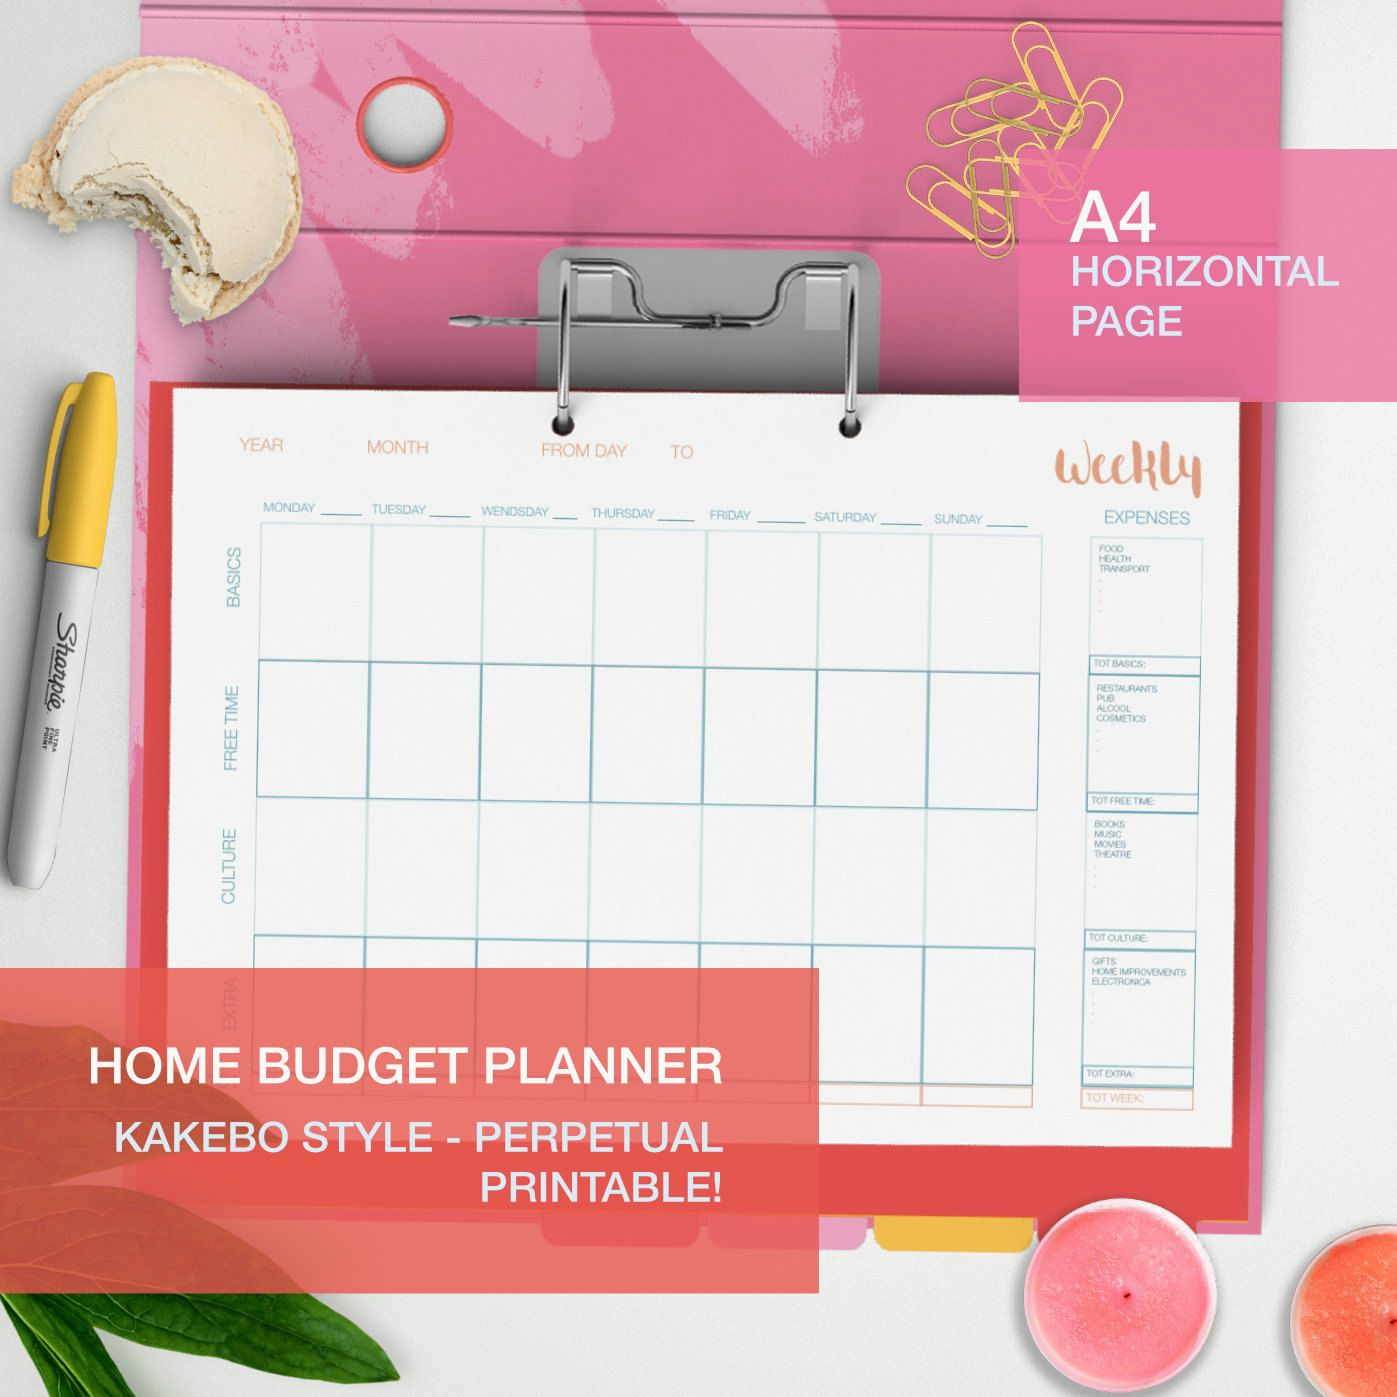 organize your home finances with this printable budget planner